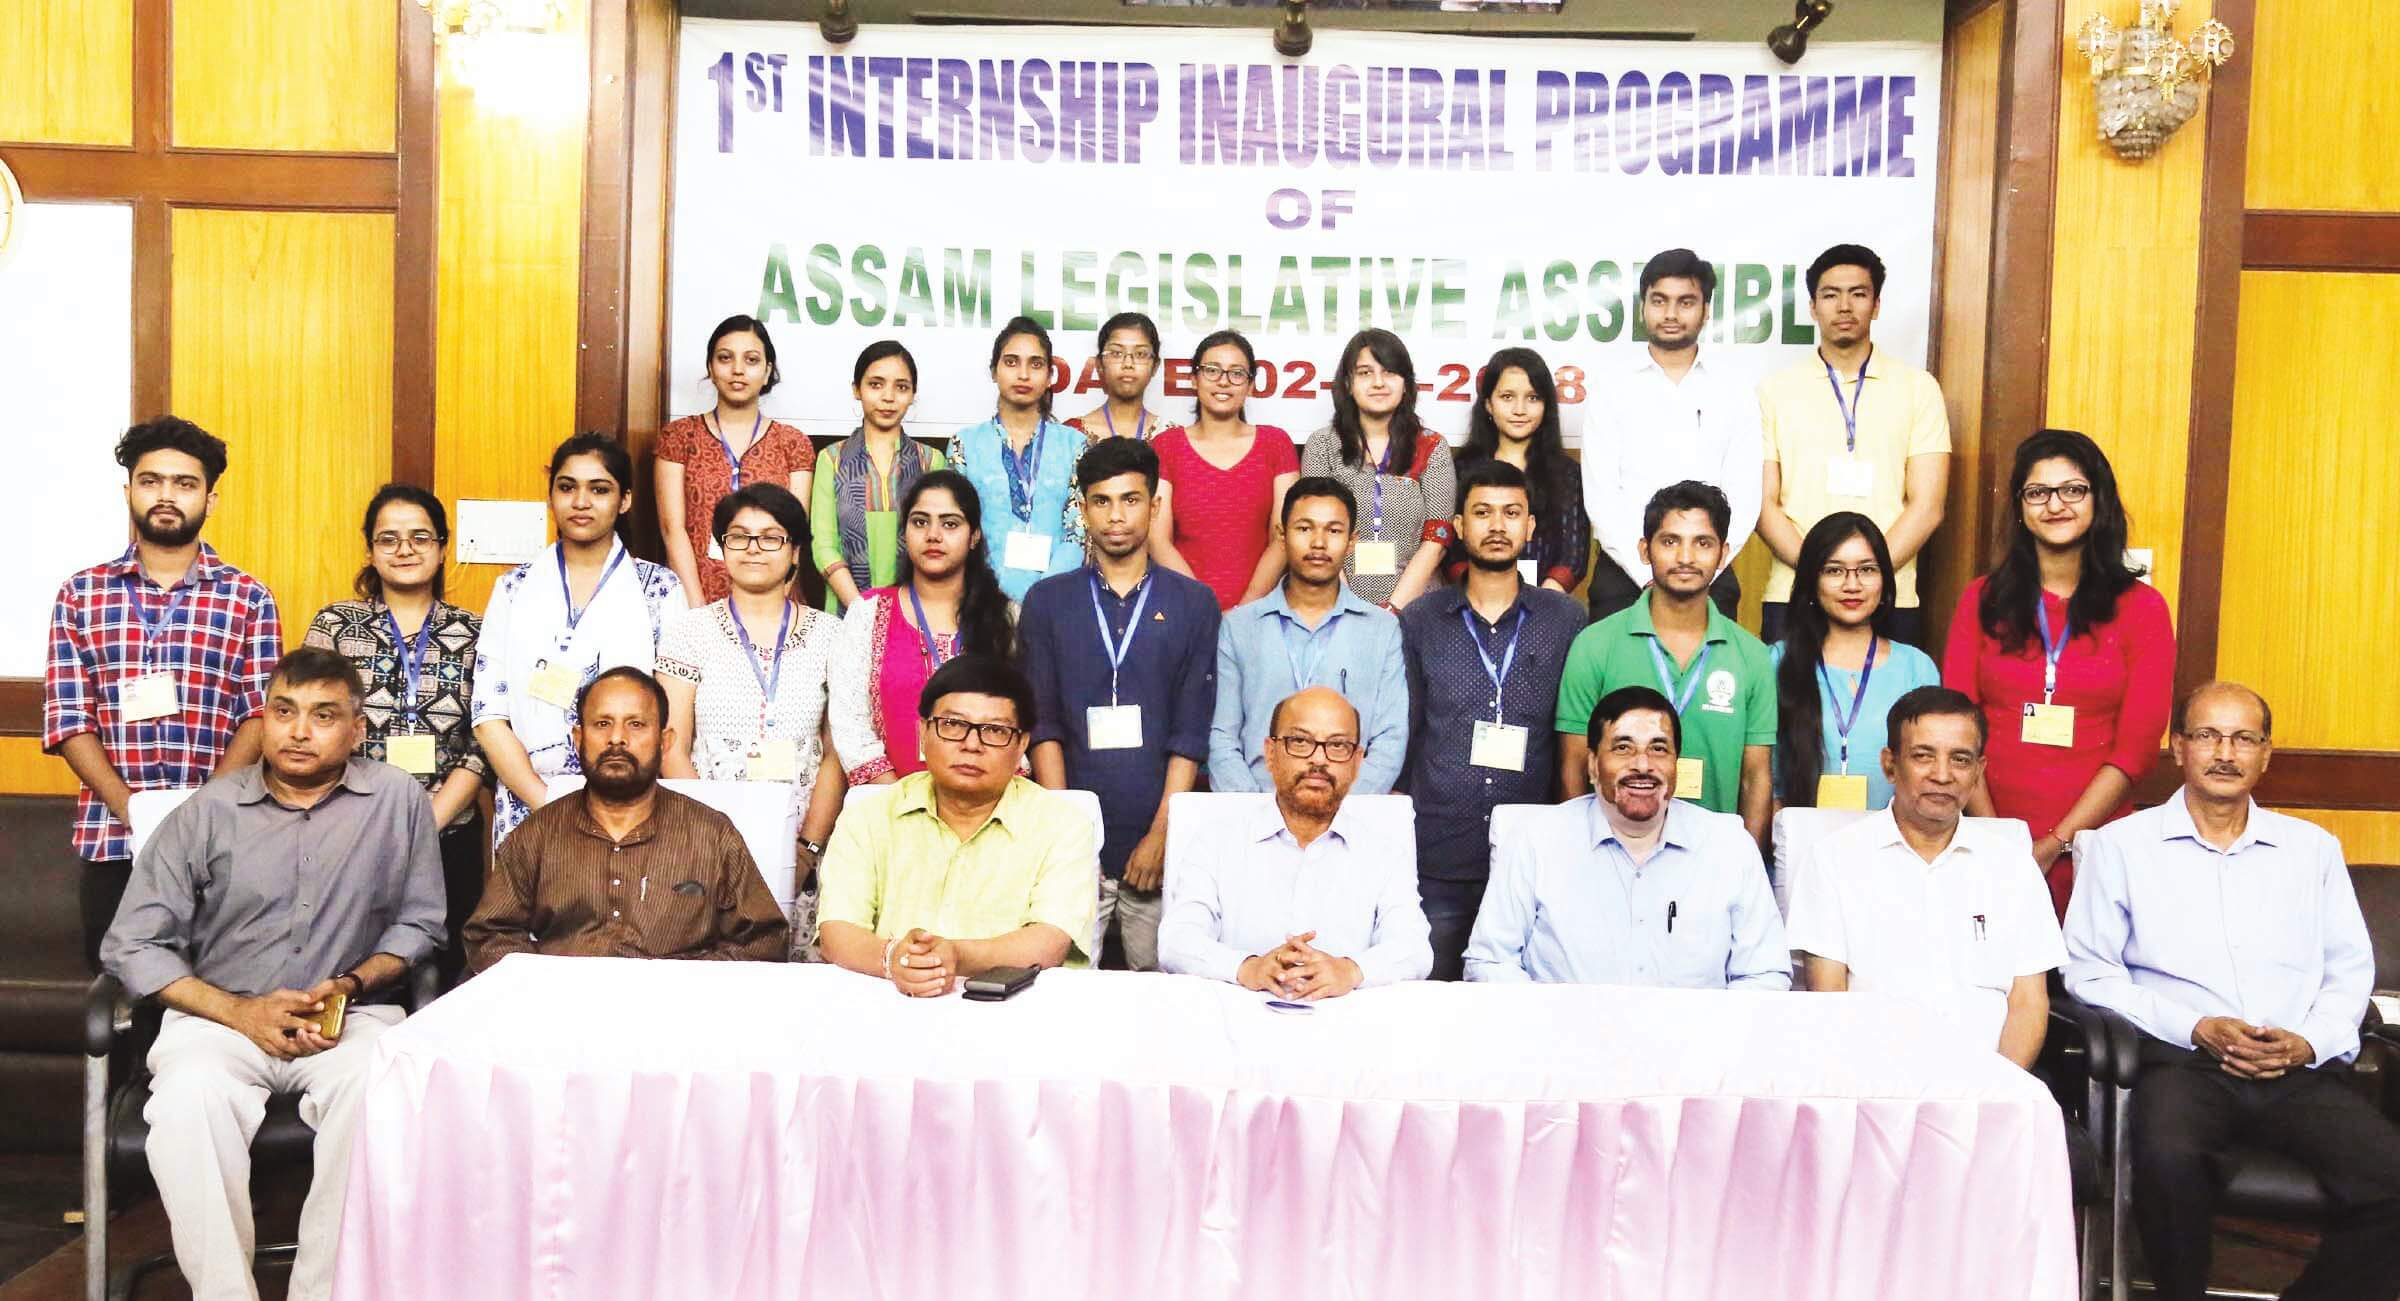 Speaker's research initiative launched